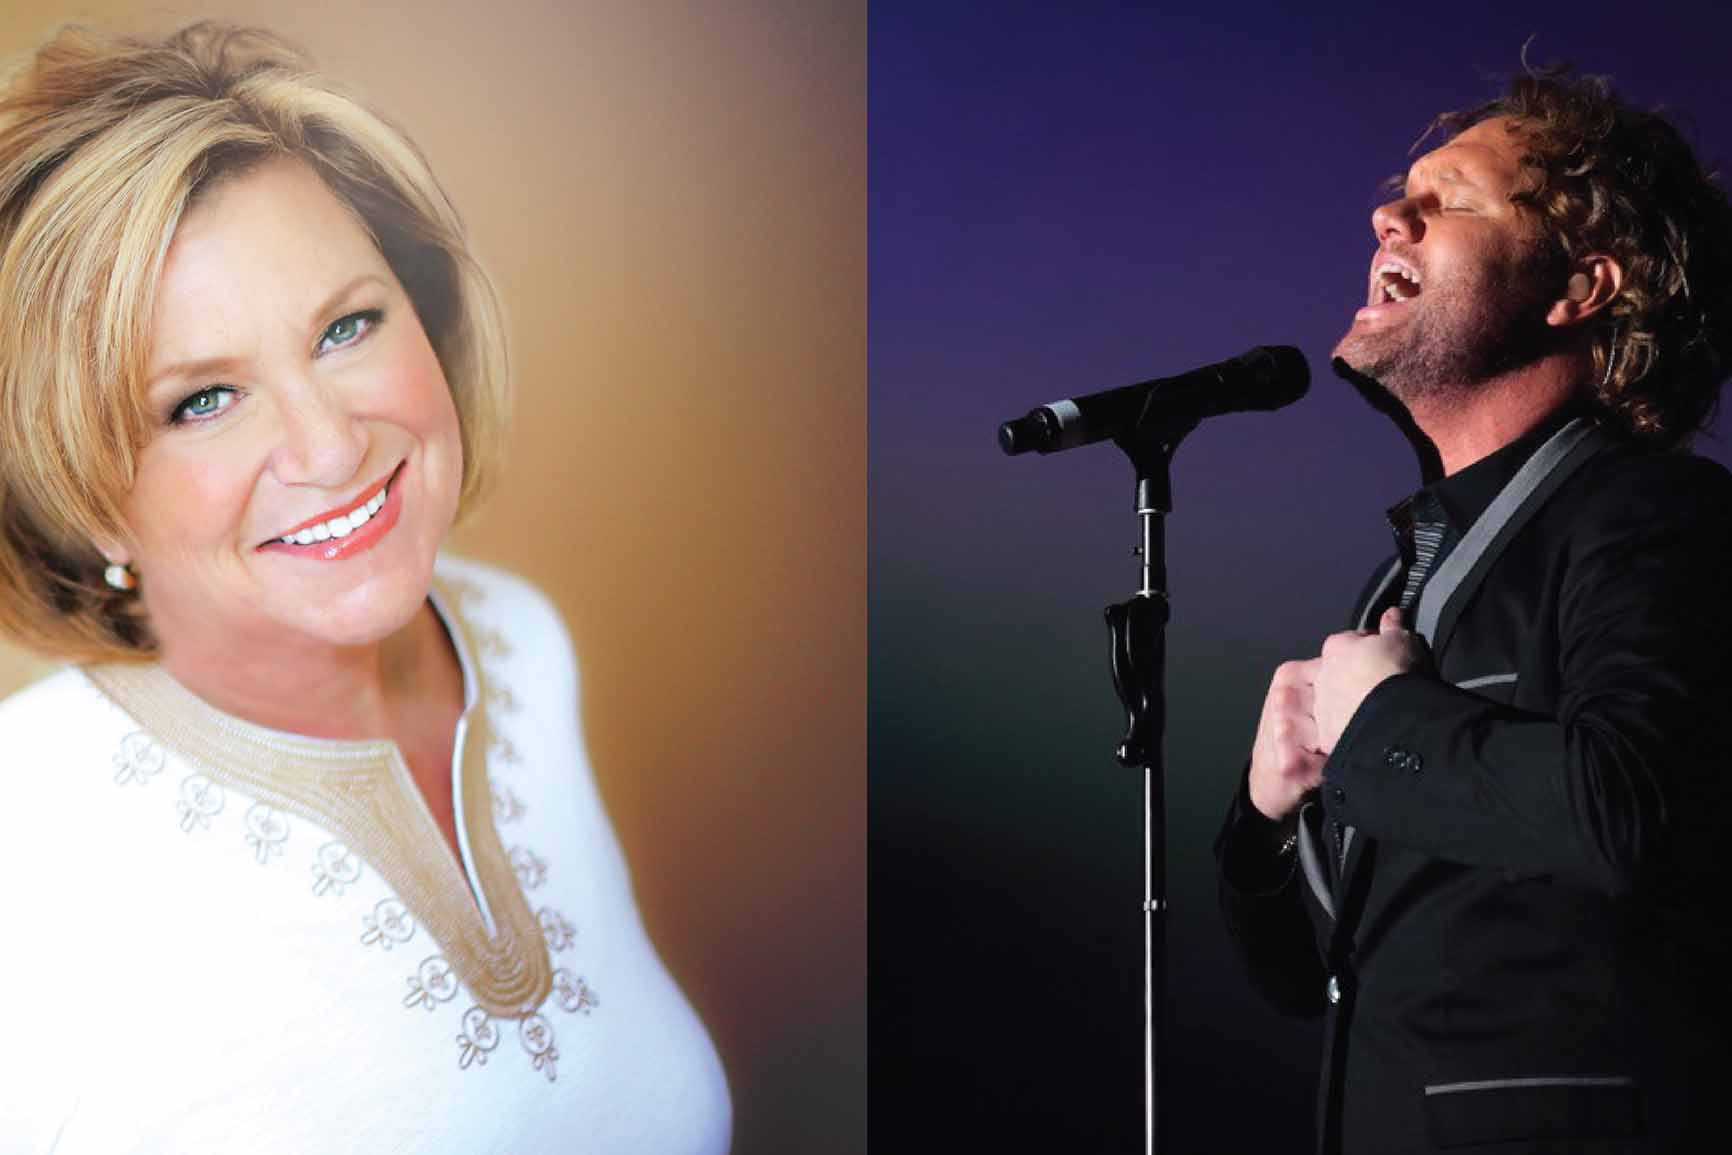 David Phelps and Sandi Patty